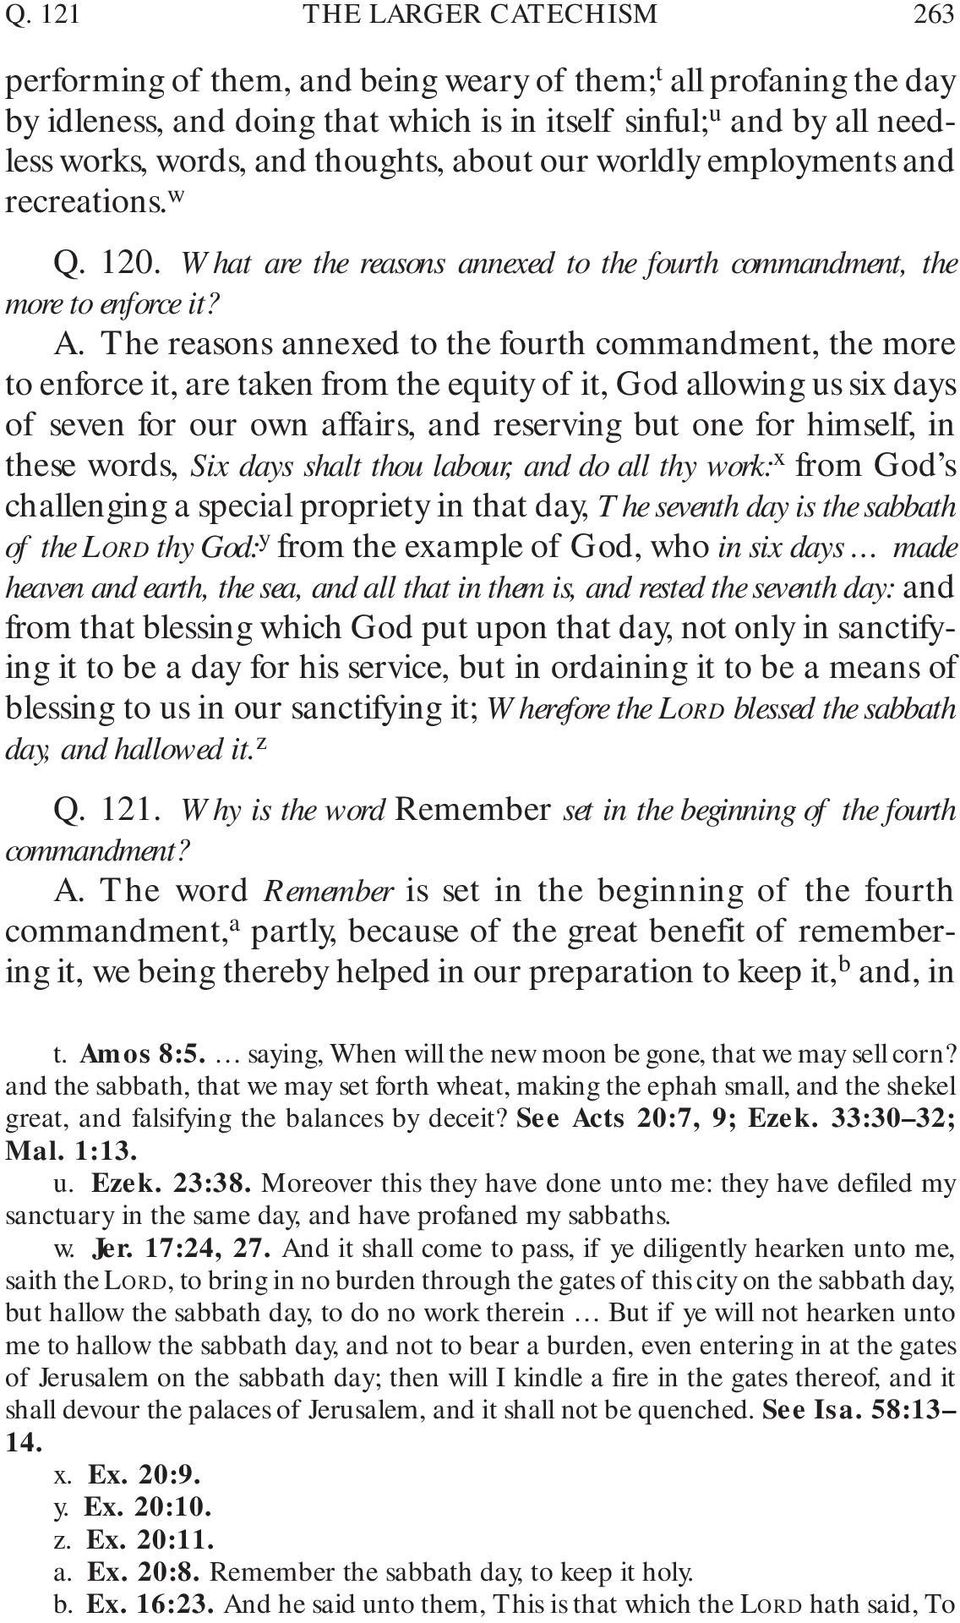 The reasons annexed to the fourth commandment, the more to enforce it, are taken from the equity of it, God allowing us six days of seven for our own affairs, and reserving but one for himself, in